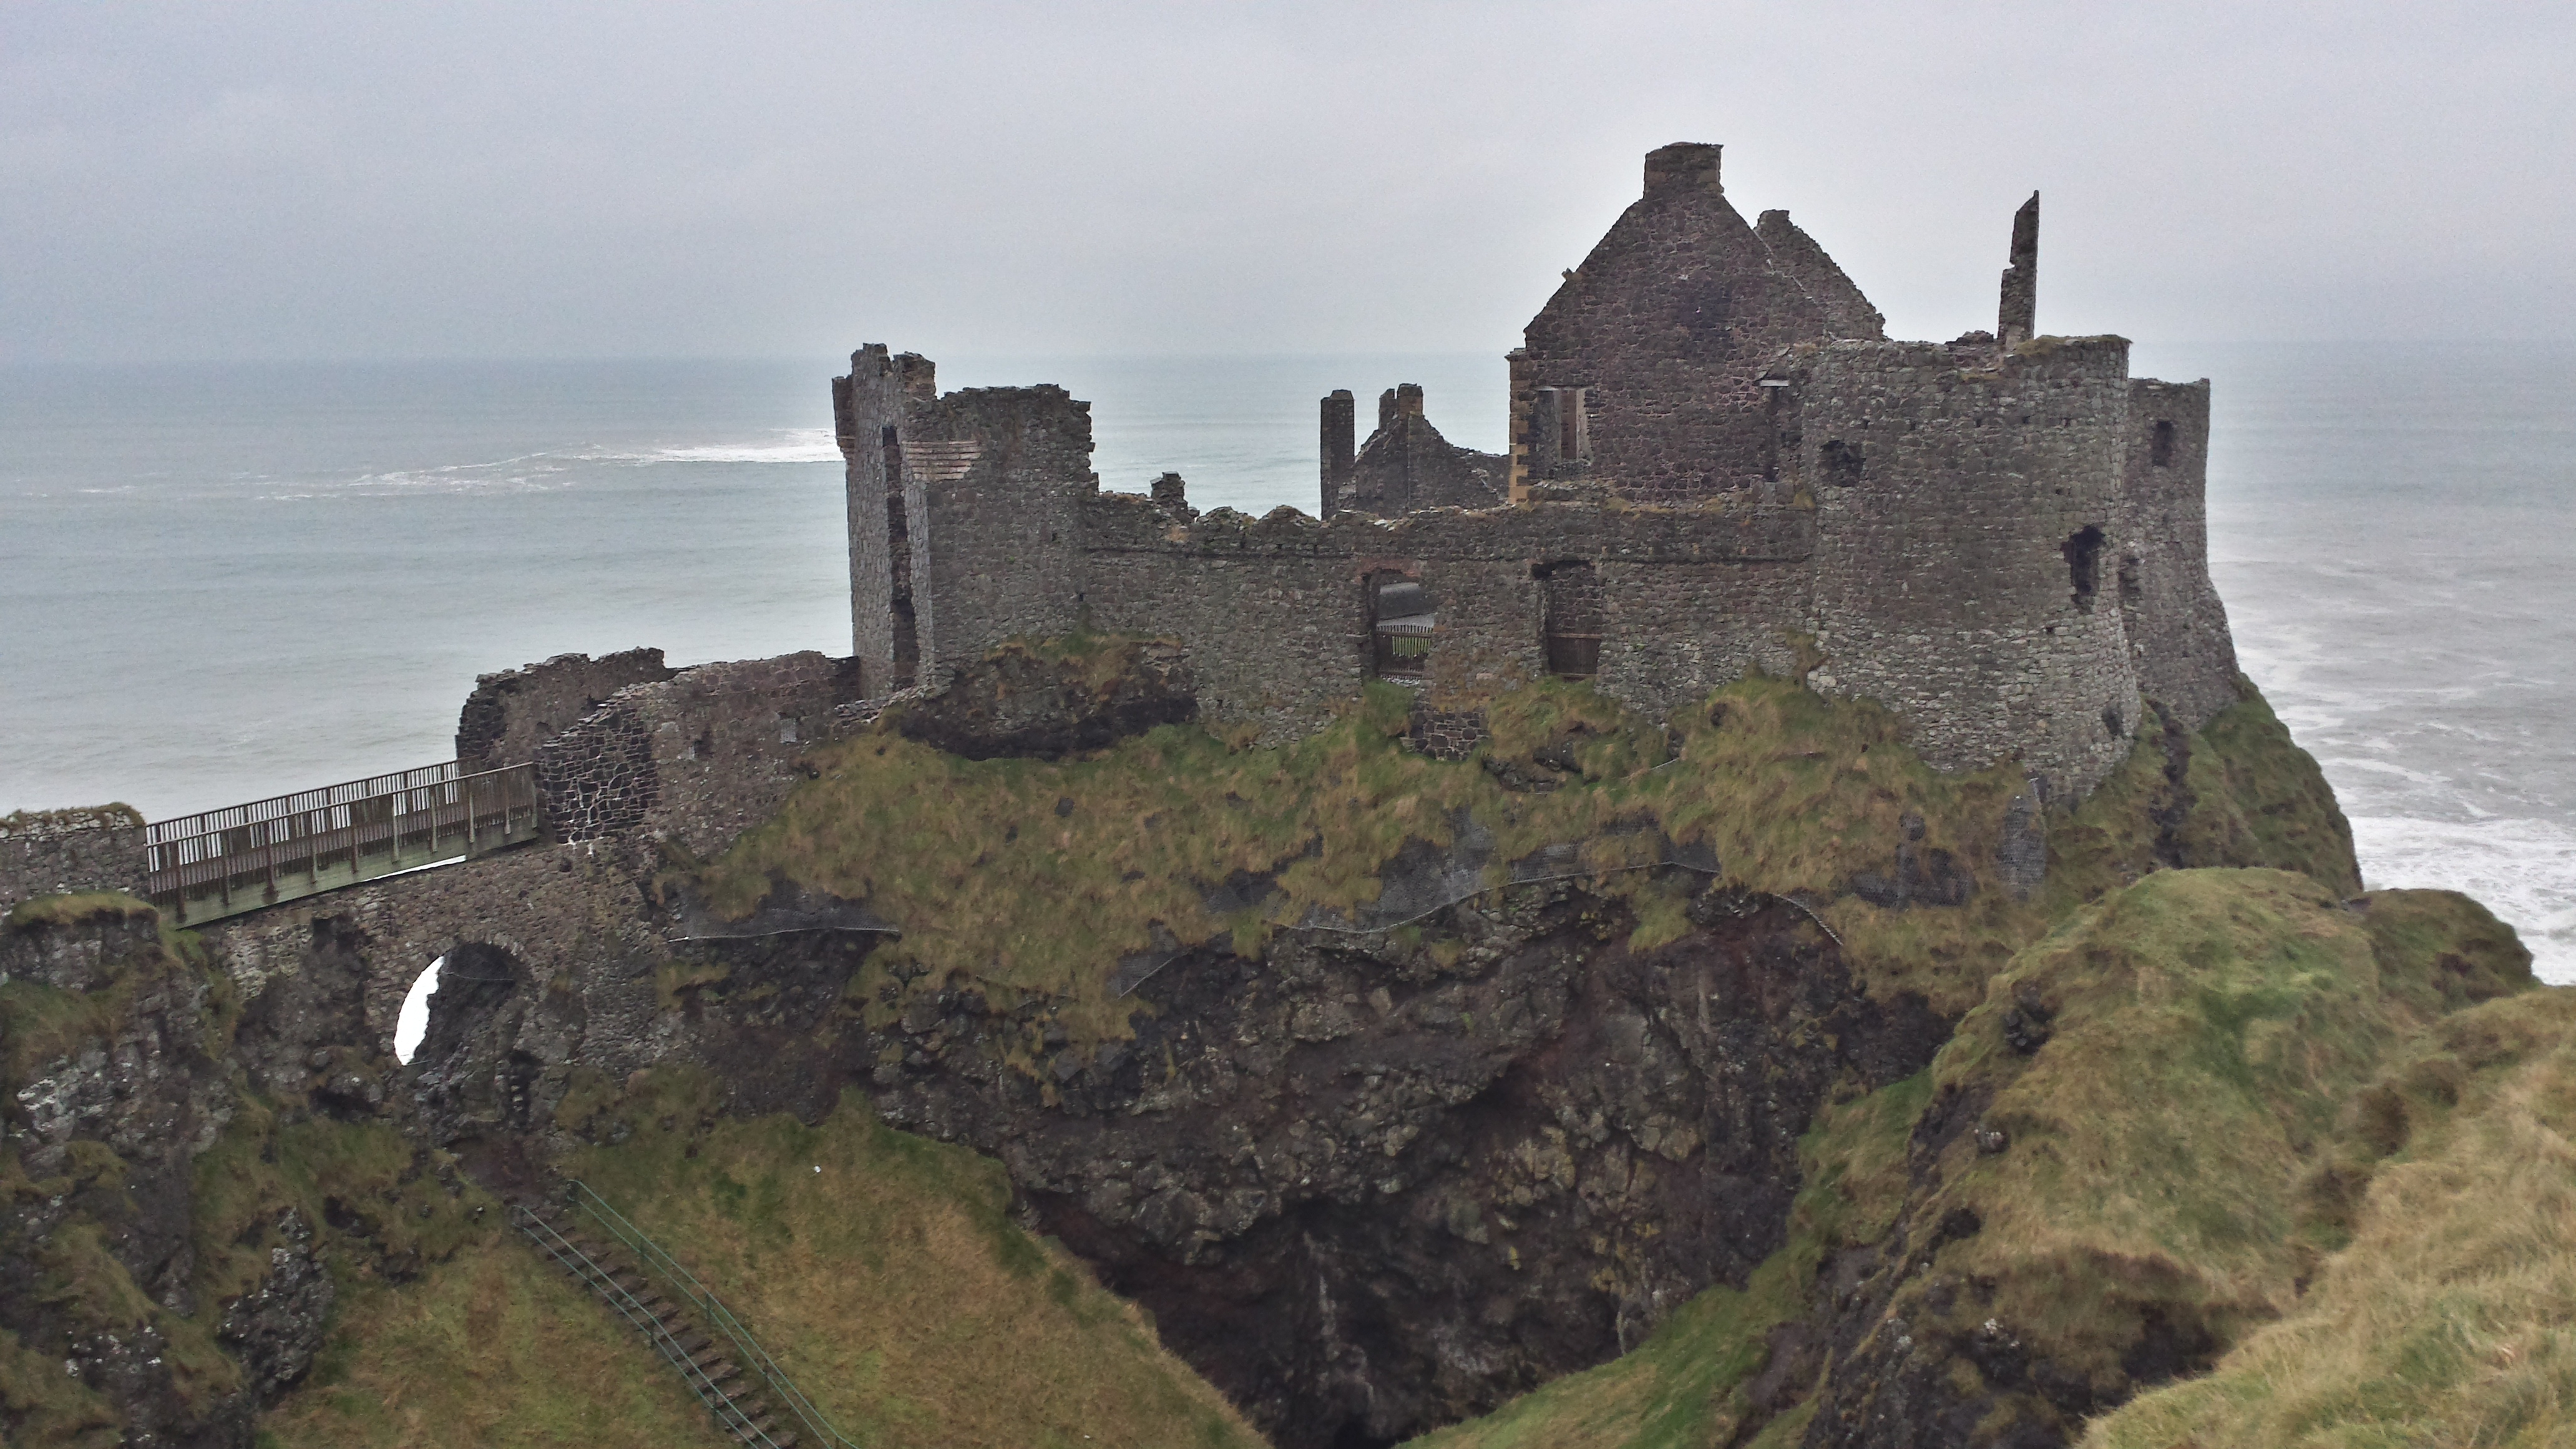 Game of Thrones Filming Location: Dunluce Castle